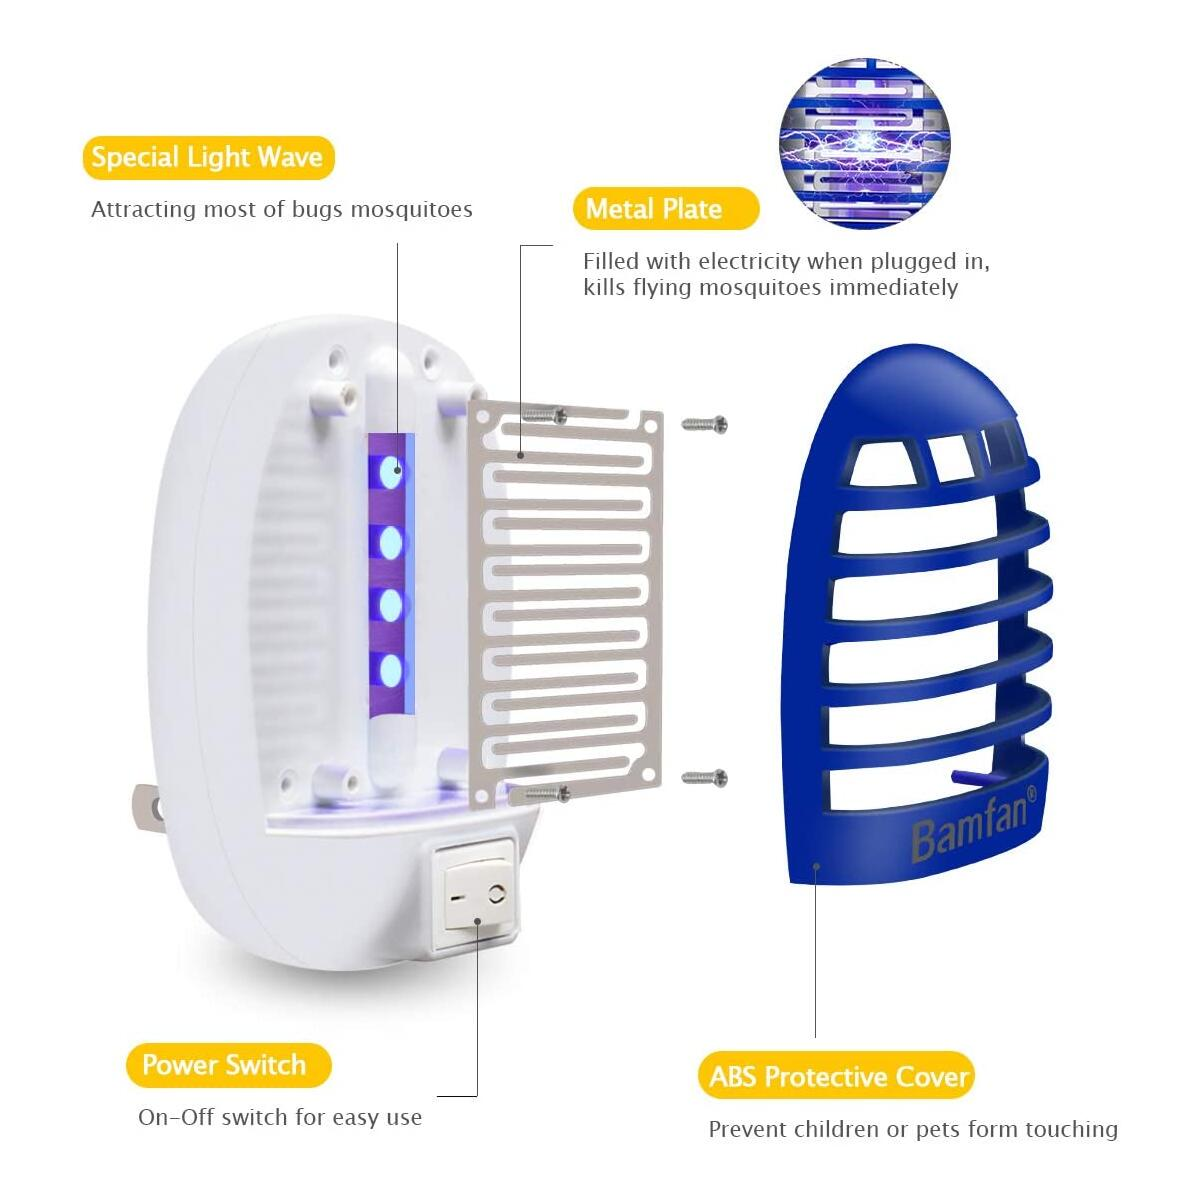 Bug Zapper Mosquito Trap - 2 Pack Indoor Plug-in Fly Trap Mosquito Zapper Electric Insect Killer with UV LED Light Removes Flies Gnats Moth and Bugs for Home